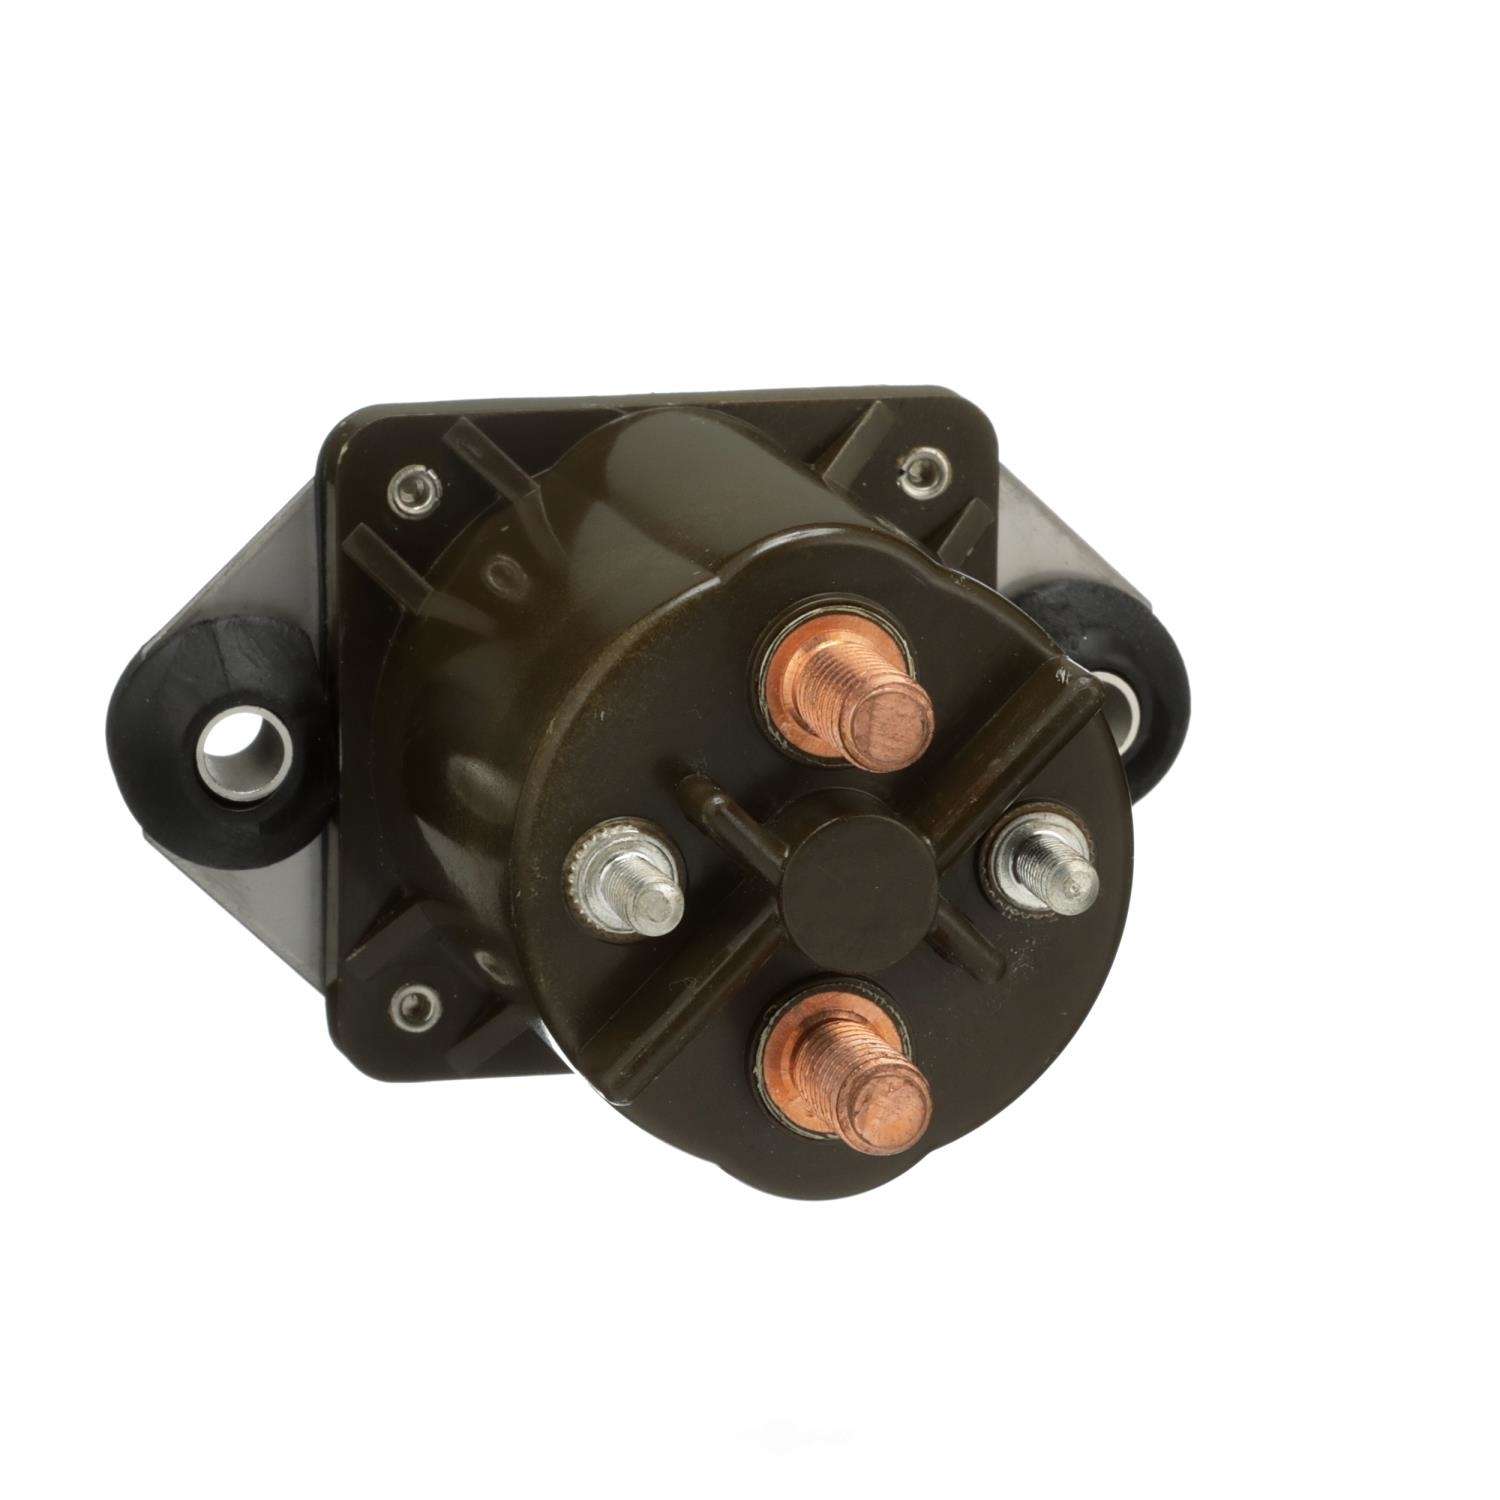 STANDARD MOTOR PRODUCTS - Emission Control Relay - STA RY-698